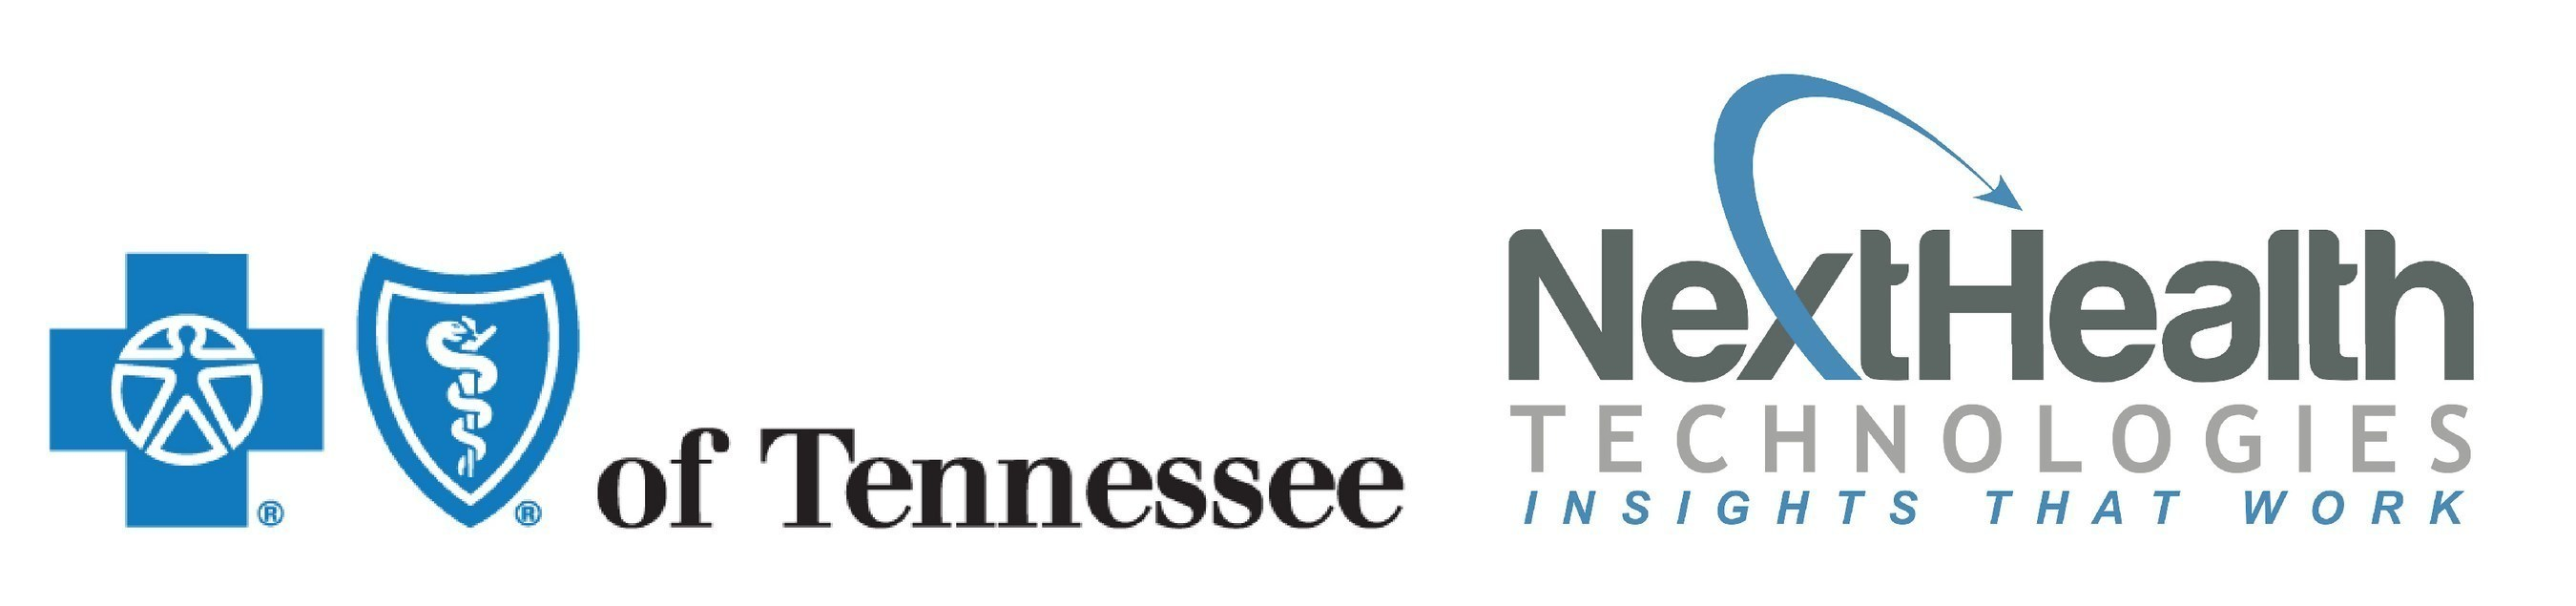 BlueCross BlueShield of Tennessee and NextHealth Technologies